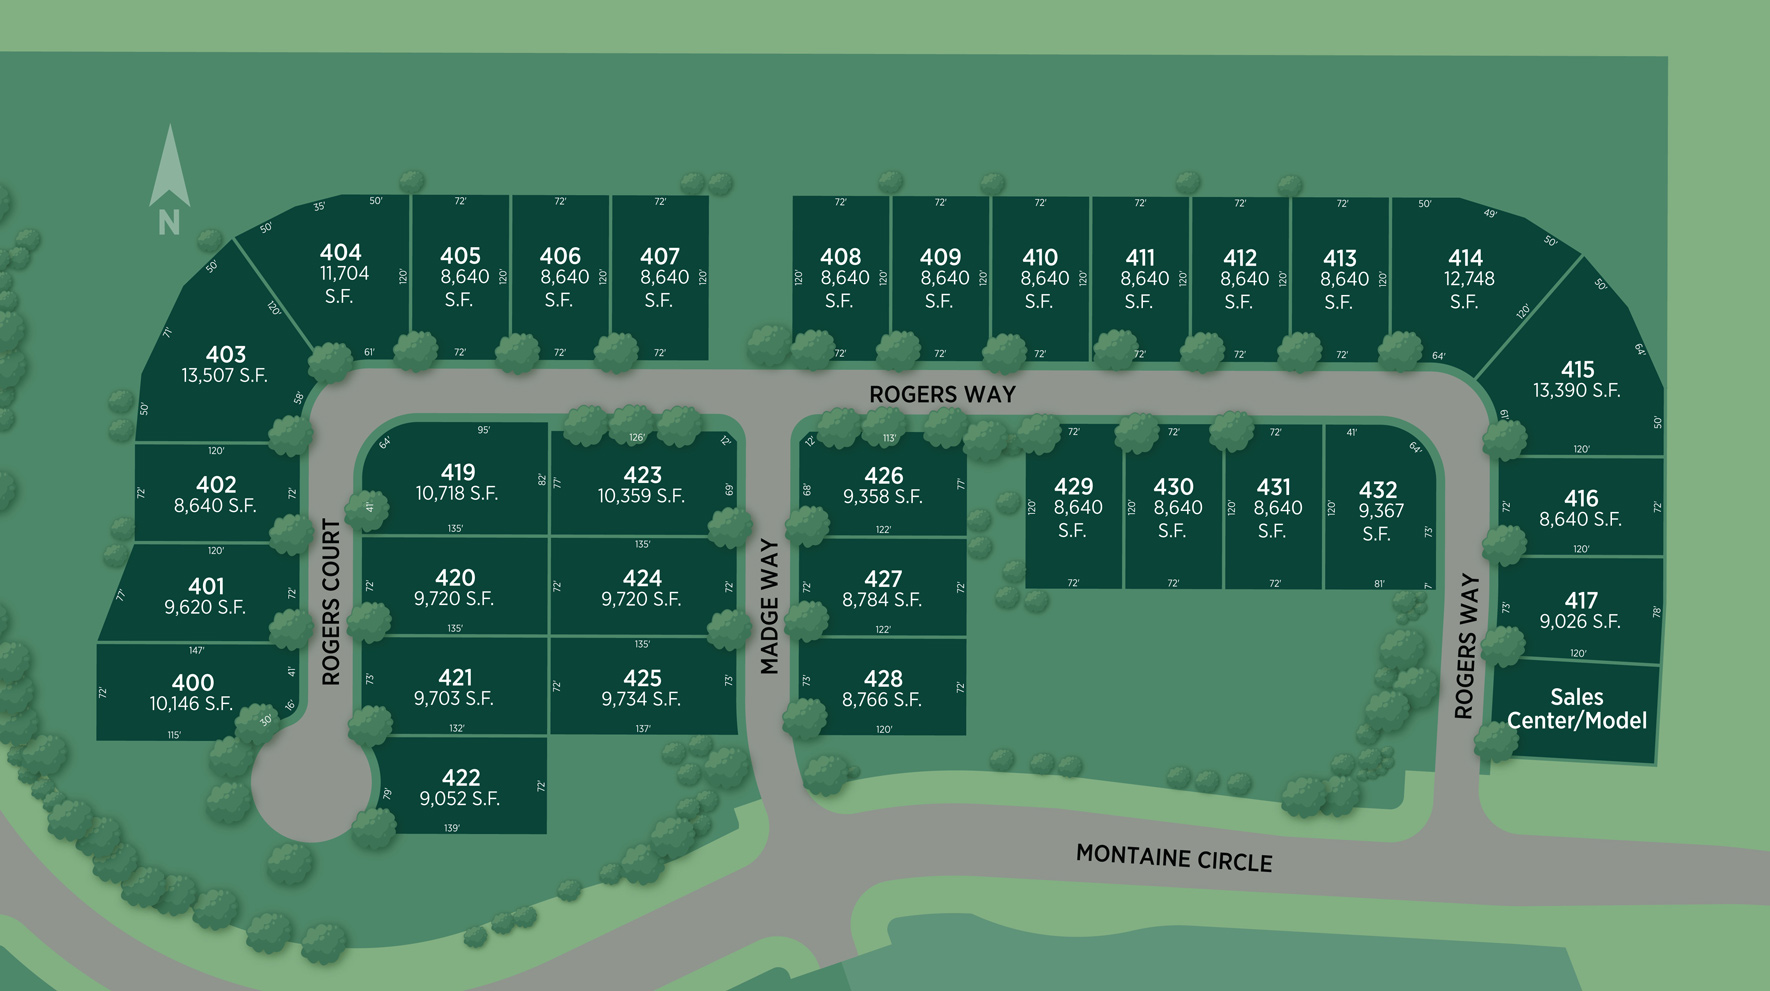 Montaine - Estate Collection Site Plan I